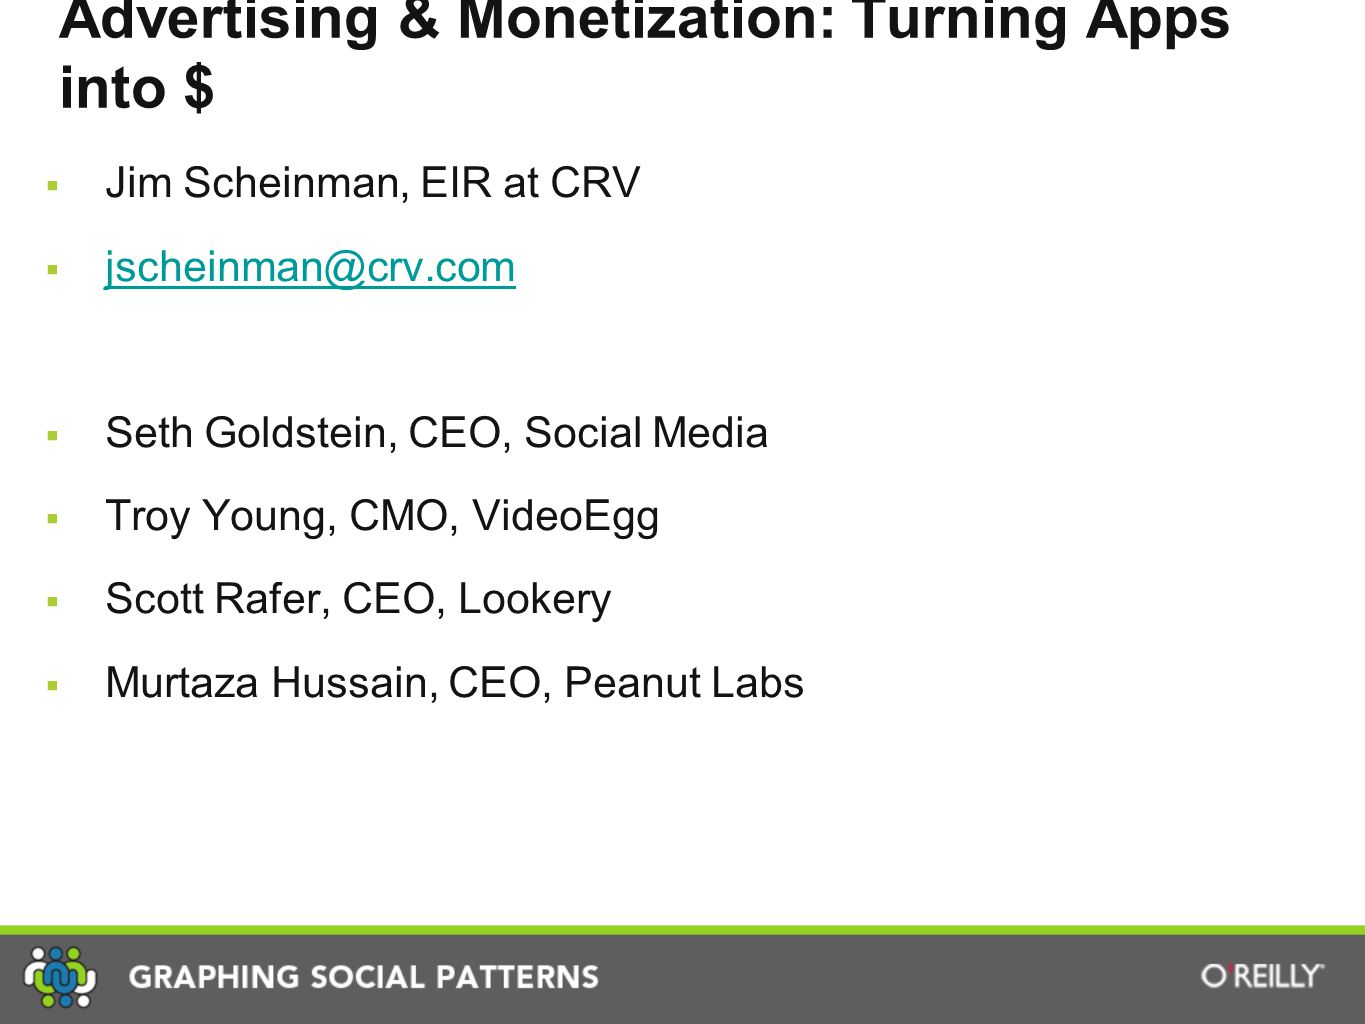 Advertising & Monetization: Turning Apps into $  Jim Scheinman, EIR at CRV  jscheinman@crv.com jscheinman@crv.com  Seth Goldstein, CEO, Social Media  Troy Young, CMO, VideoEgg  Scott Rafer, CEO, Lookery  Murtaza Hussain, CEO, Peanut Labs